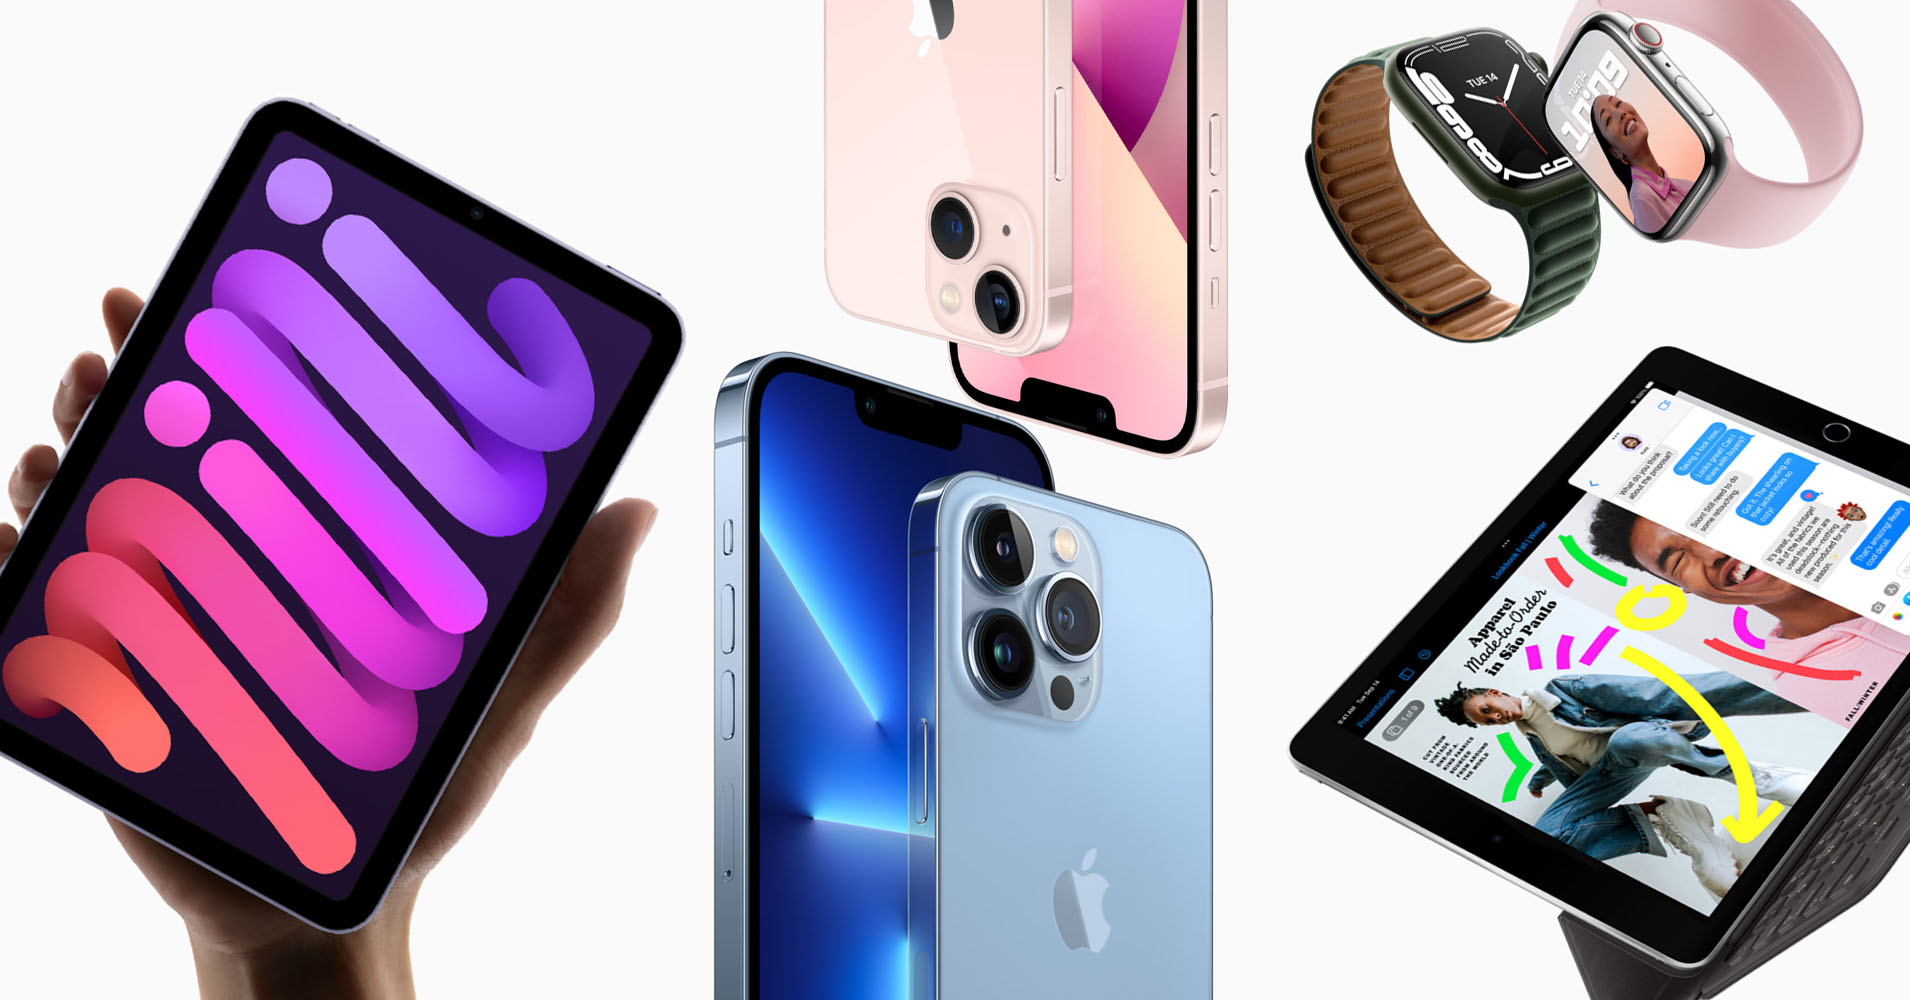 Sep 13, 2021· what to expect from apple's iphone 13 event an iphone 13 with a familiar design and maybe a new nighttime camera trick. Lc6guvqemeffzm